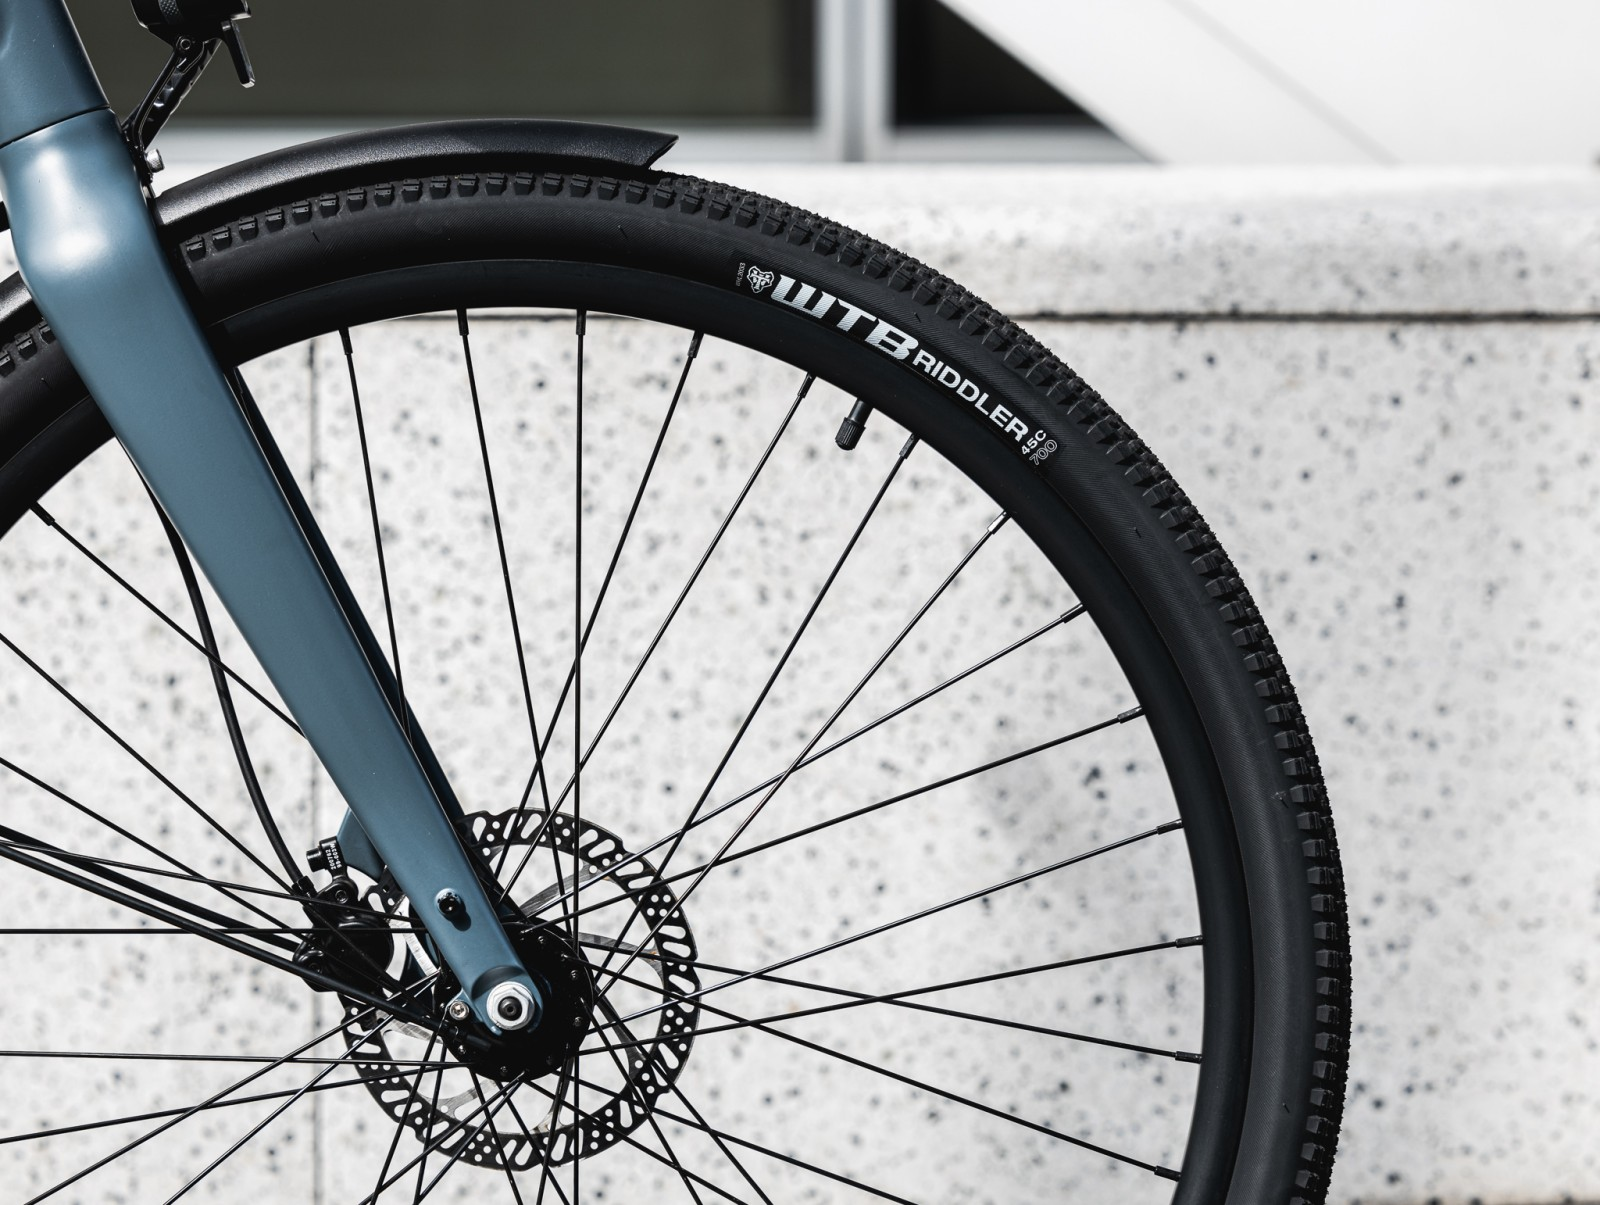 Close up of black bicycle tire